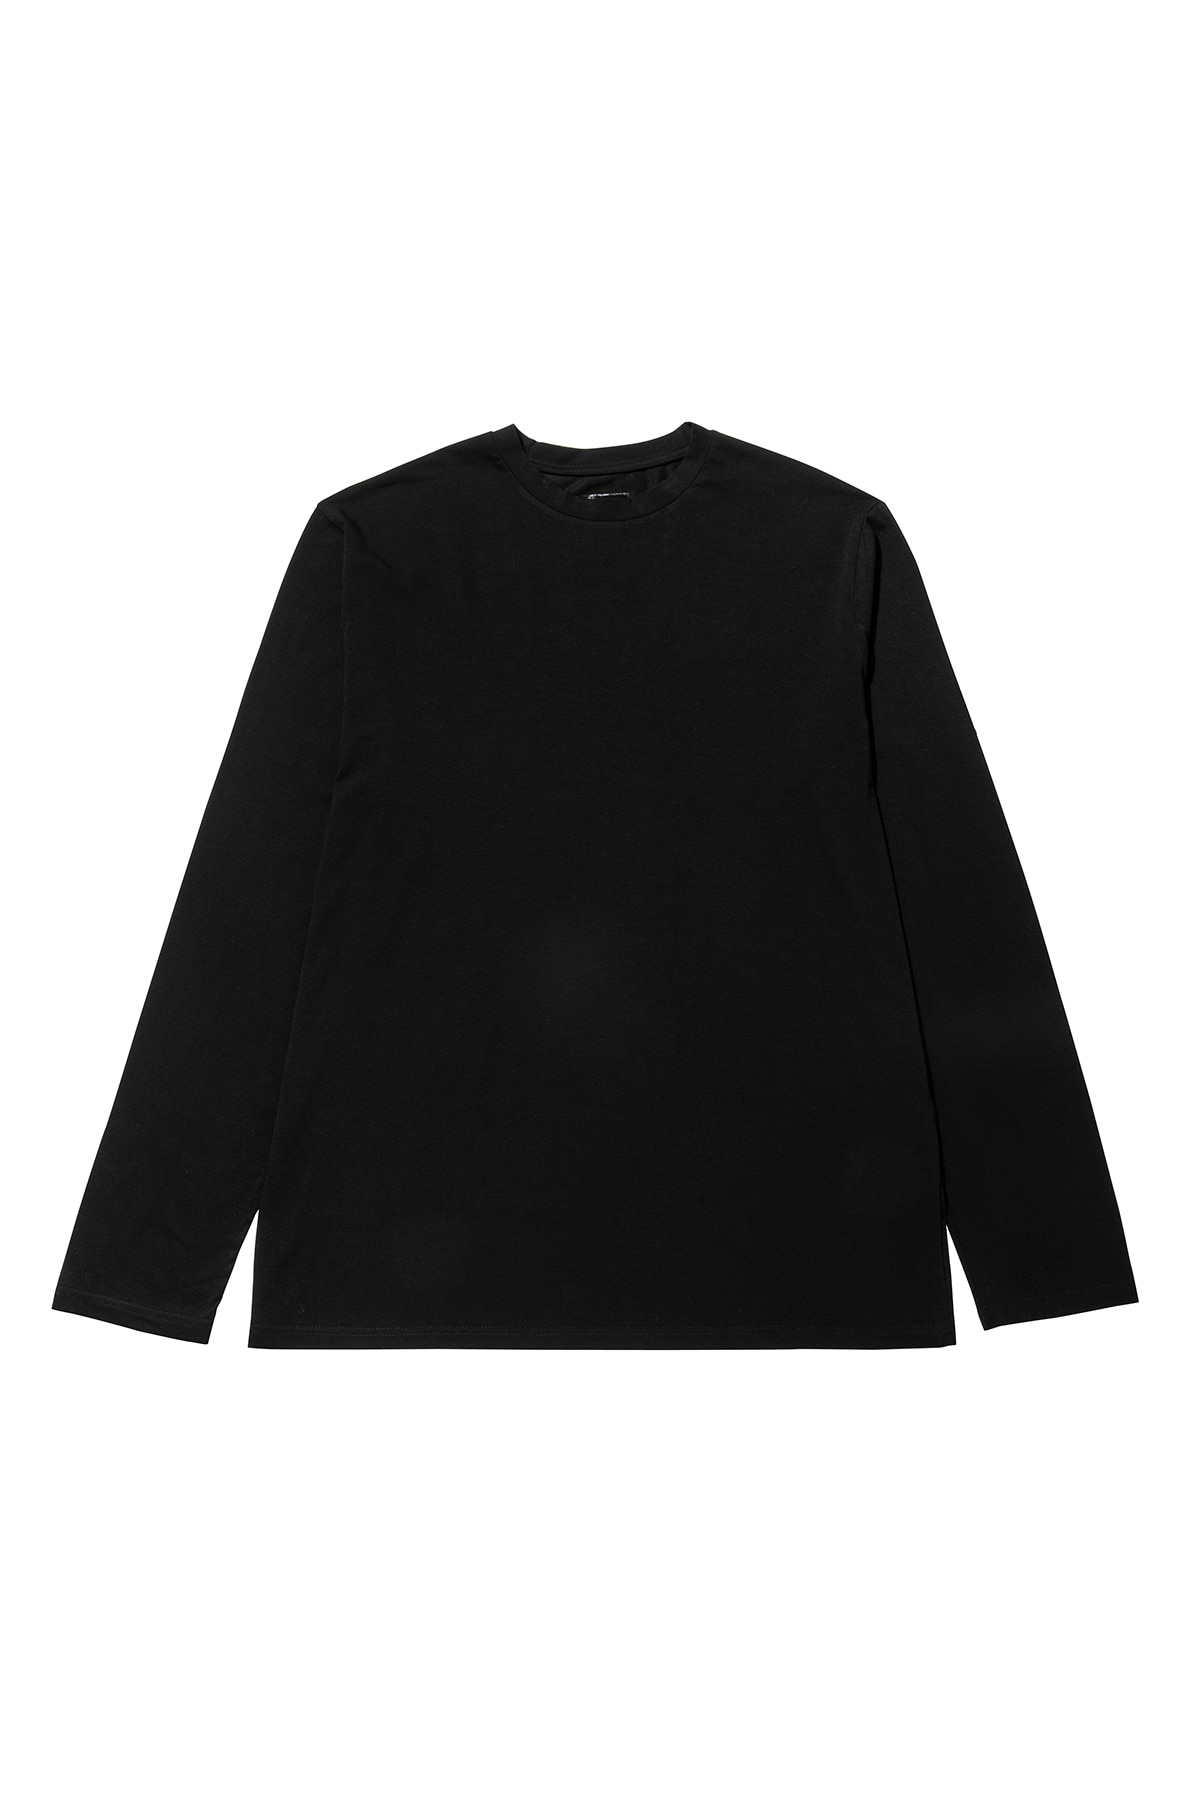 Pigment washing sleeve T-shirt (black) #jp27